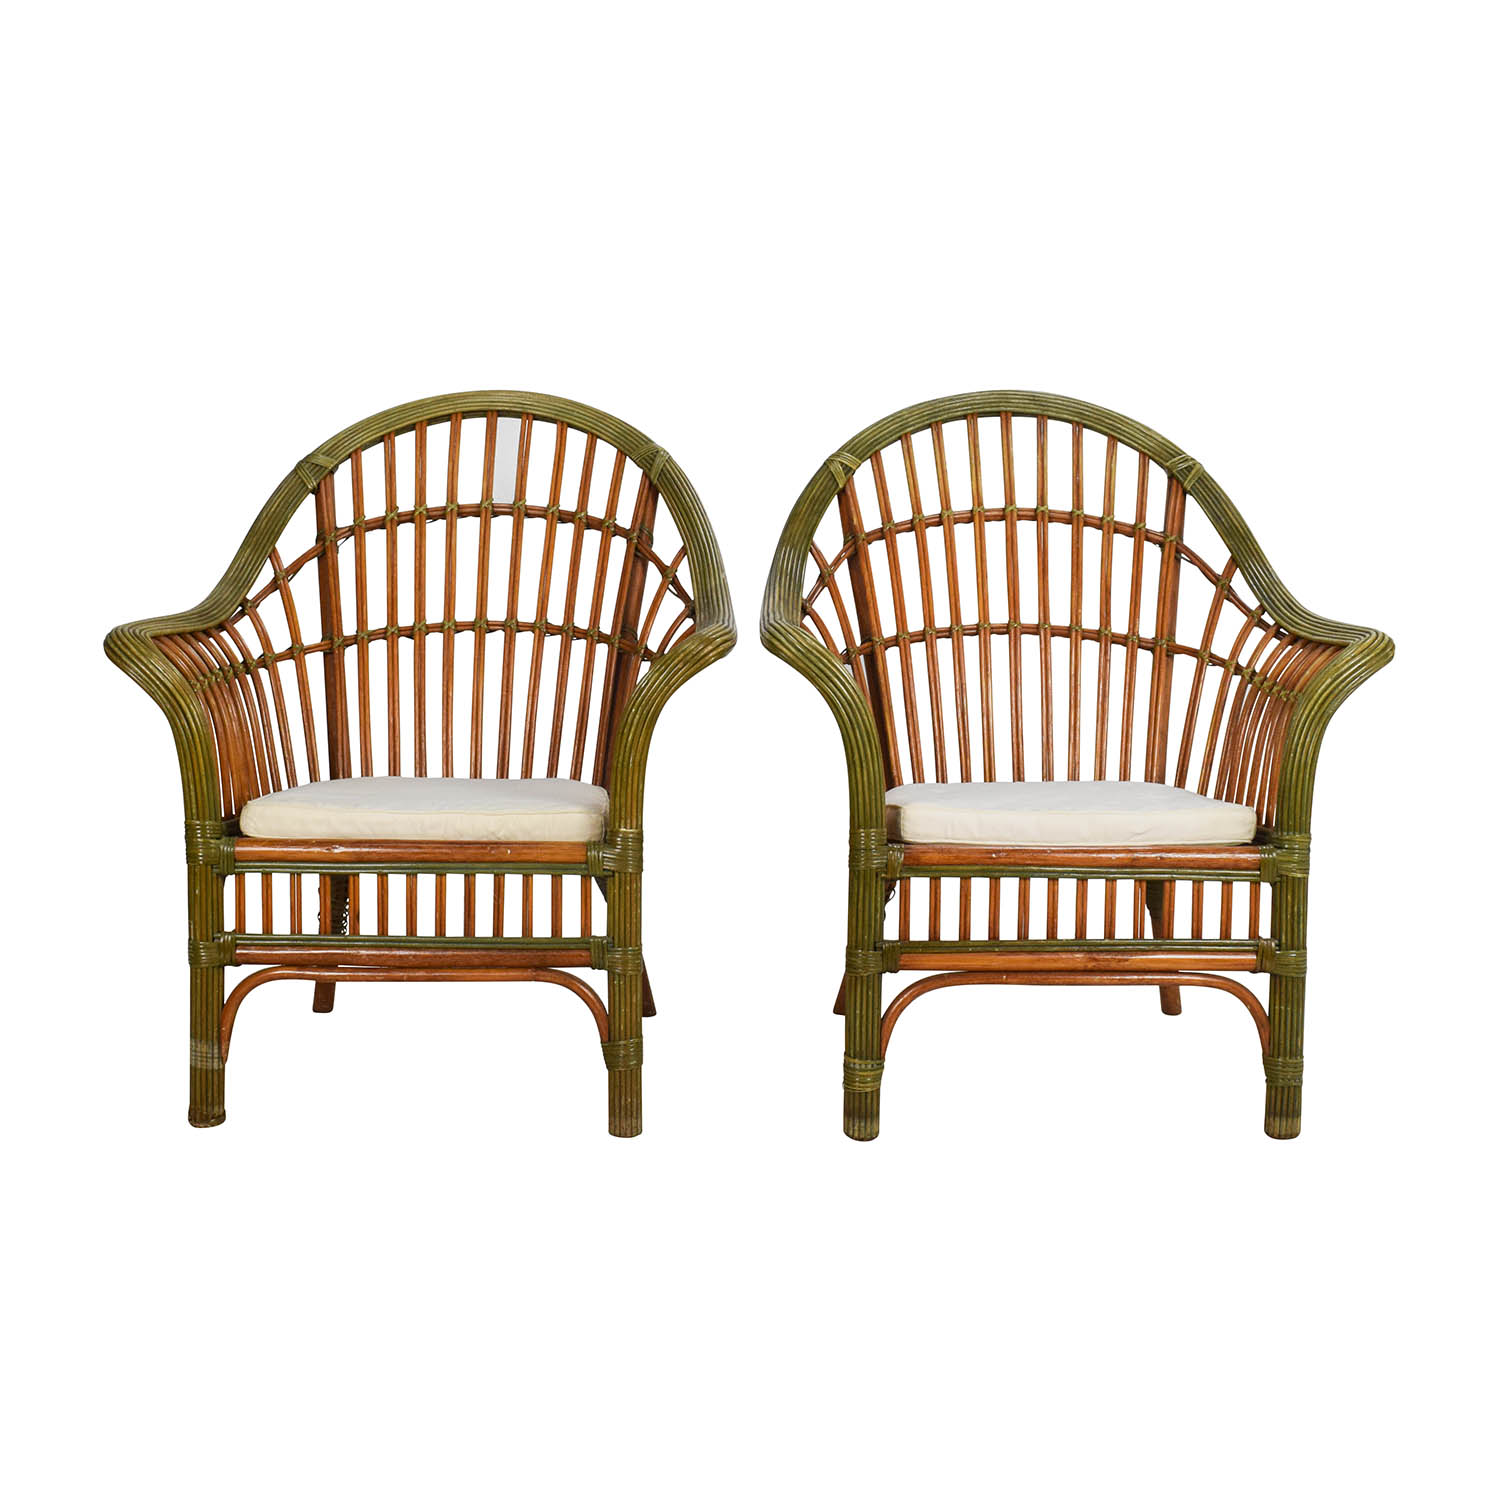 Pair Of Wicker Arm Chairs With Cushions on sale